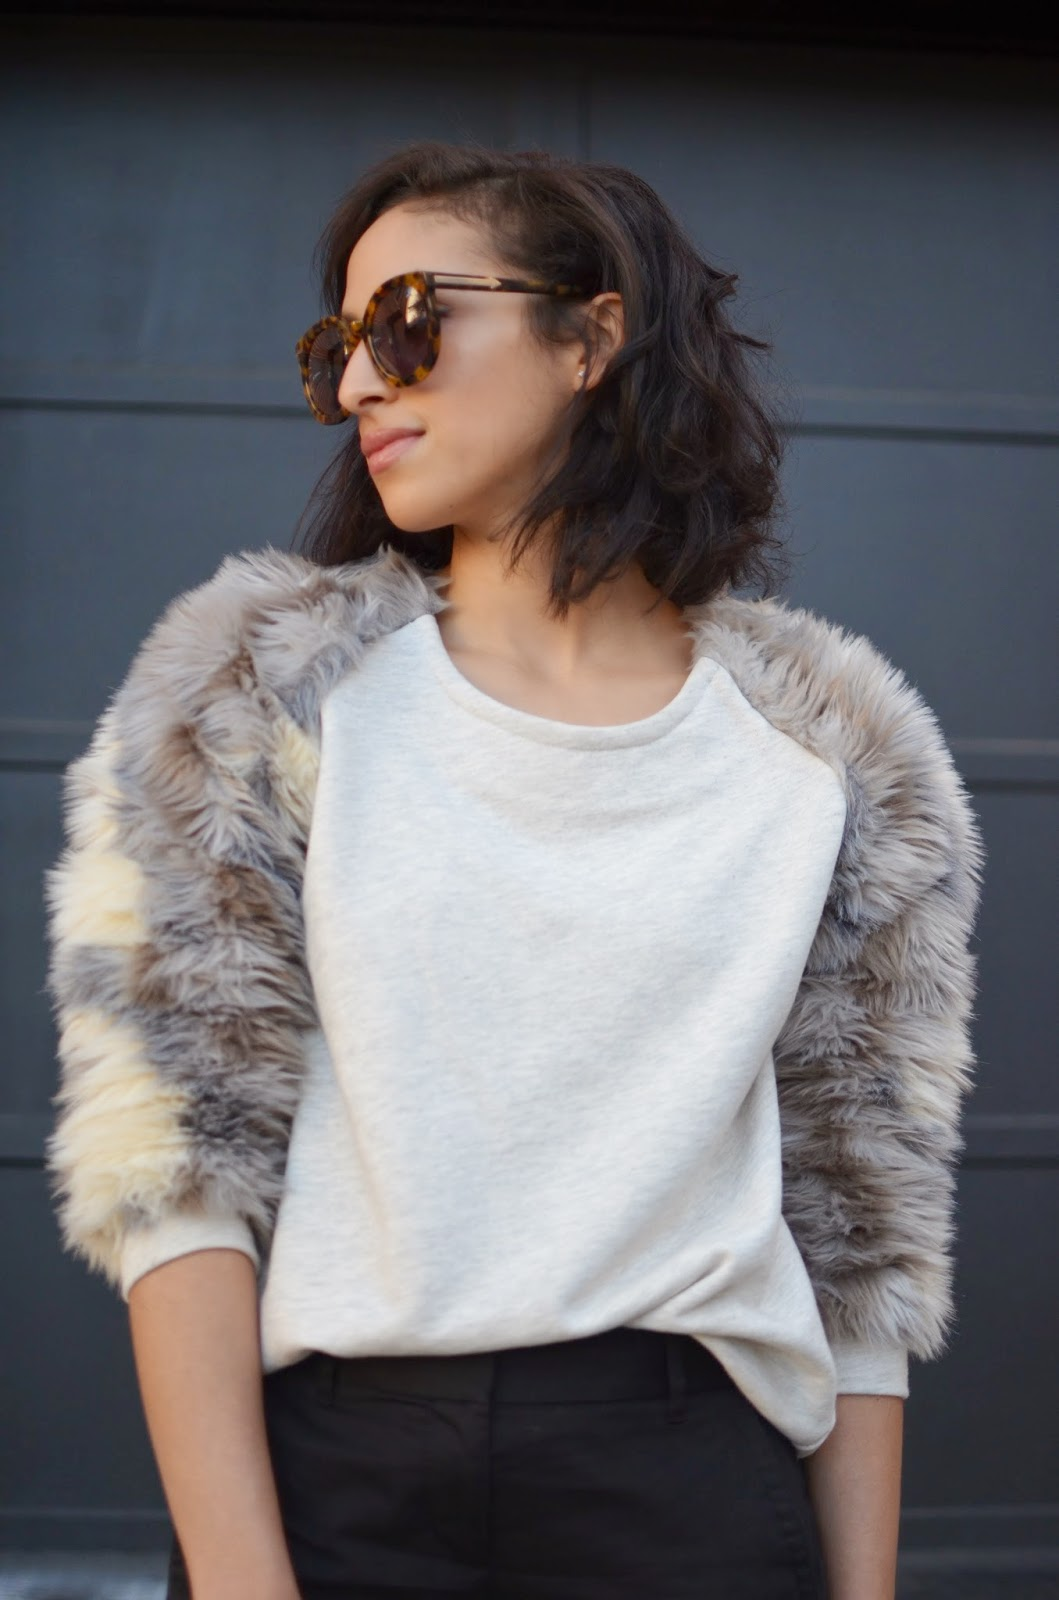 faux fur, faux fur sweatshirt, new hairdo, short curly hair, short hair, Karen Walker Super